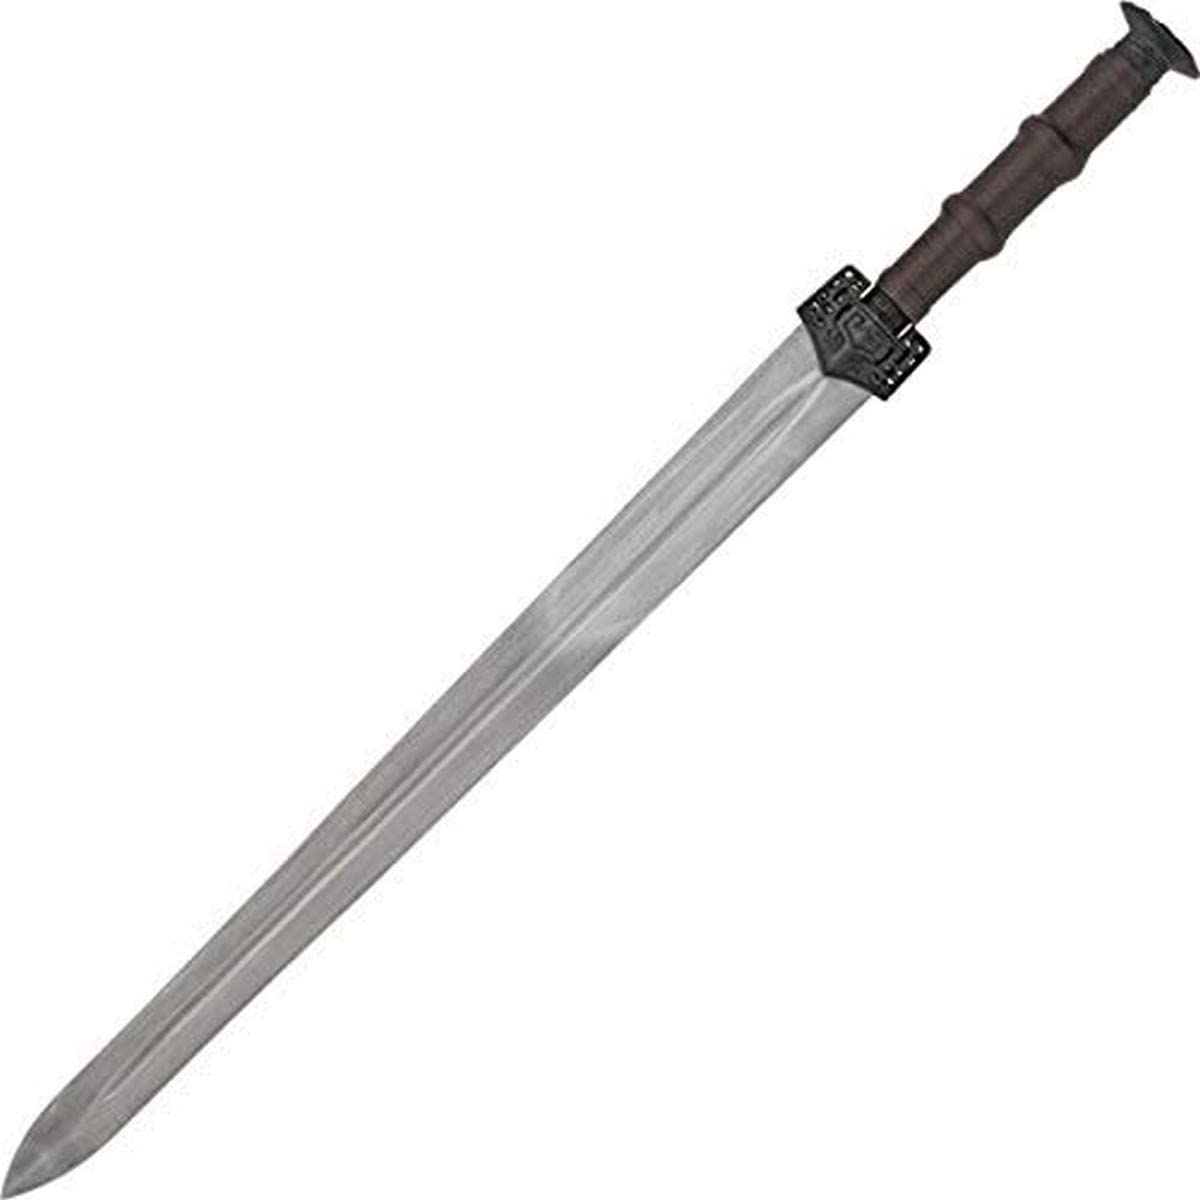 BladesUSA Purchase SW-403 Popular brand in the world Oriental Overall Sword 33.25-Inch